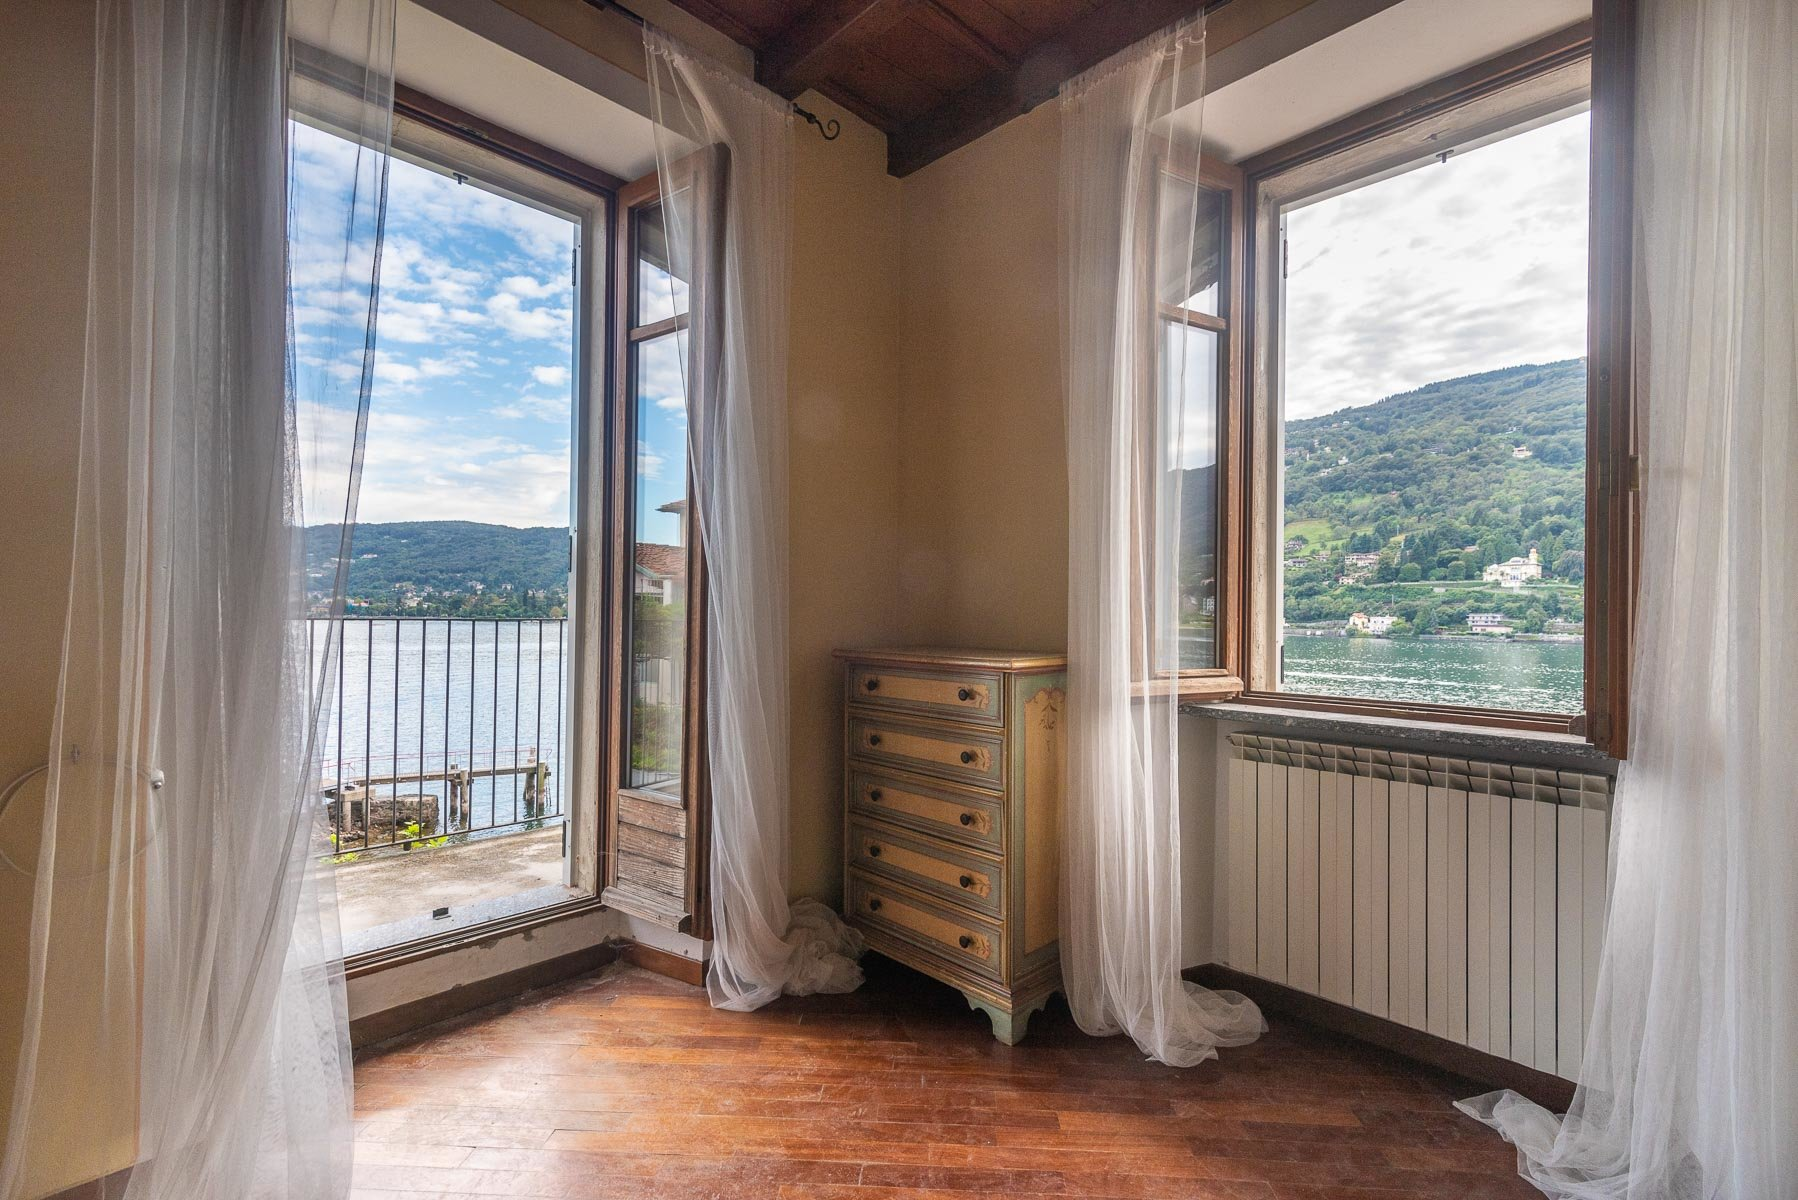 Apartment for sale in Pescatori island,Stresa-bedroom with view